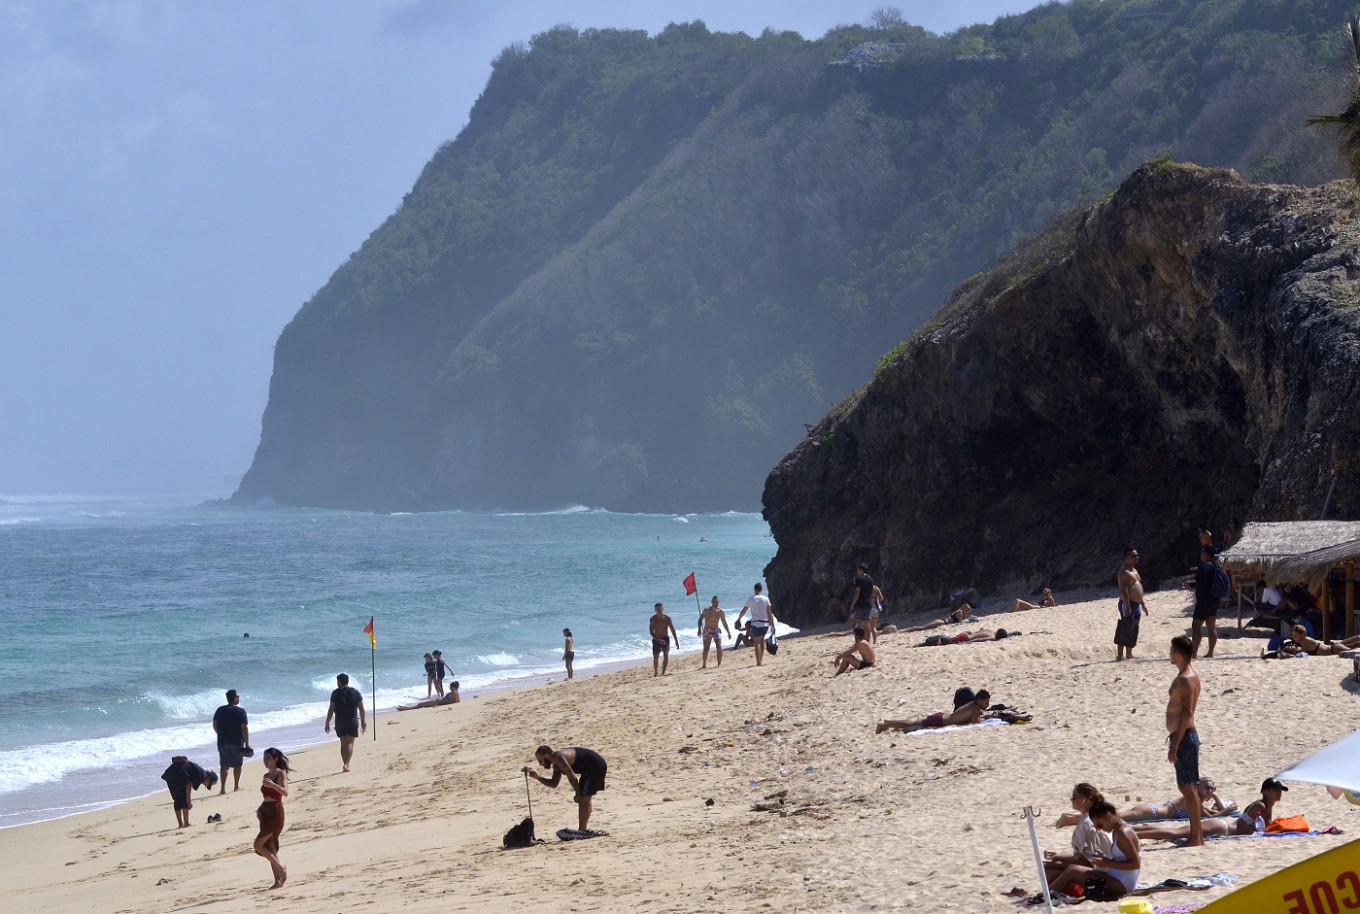 bali is most visited by australian